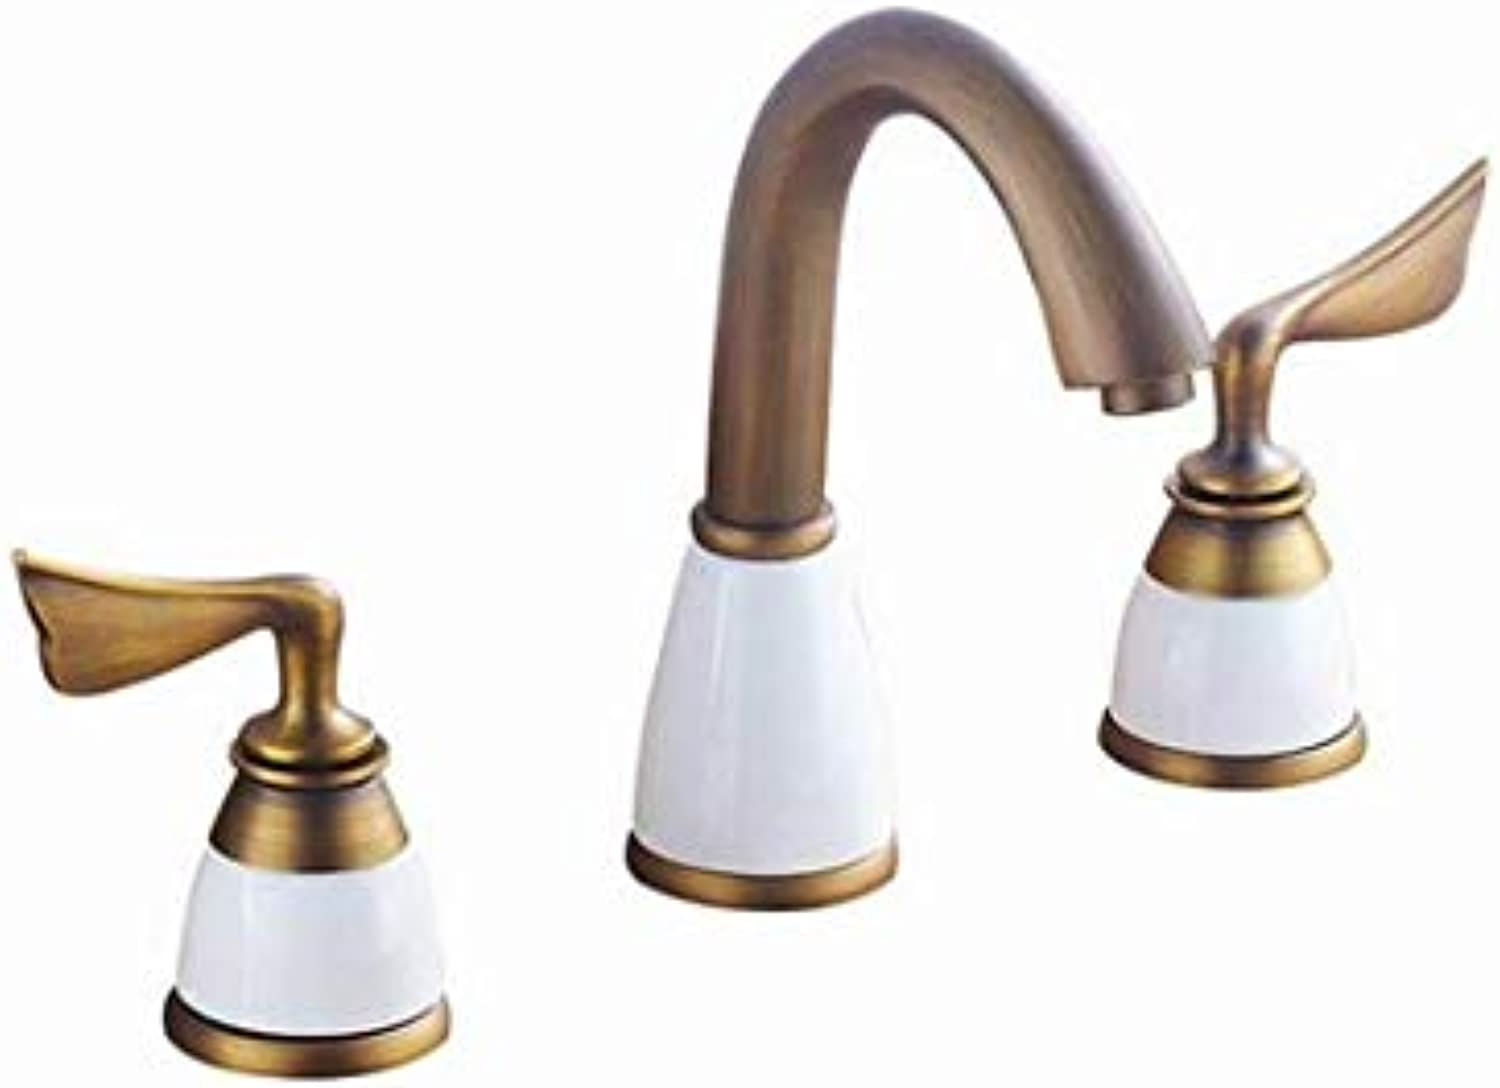 Modern High Quality Vintage Faucetfaucet Hot And Cold Double Open Separator Basin Faucet All Copper European